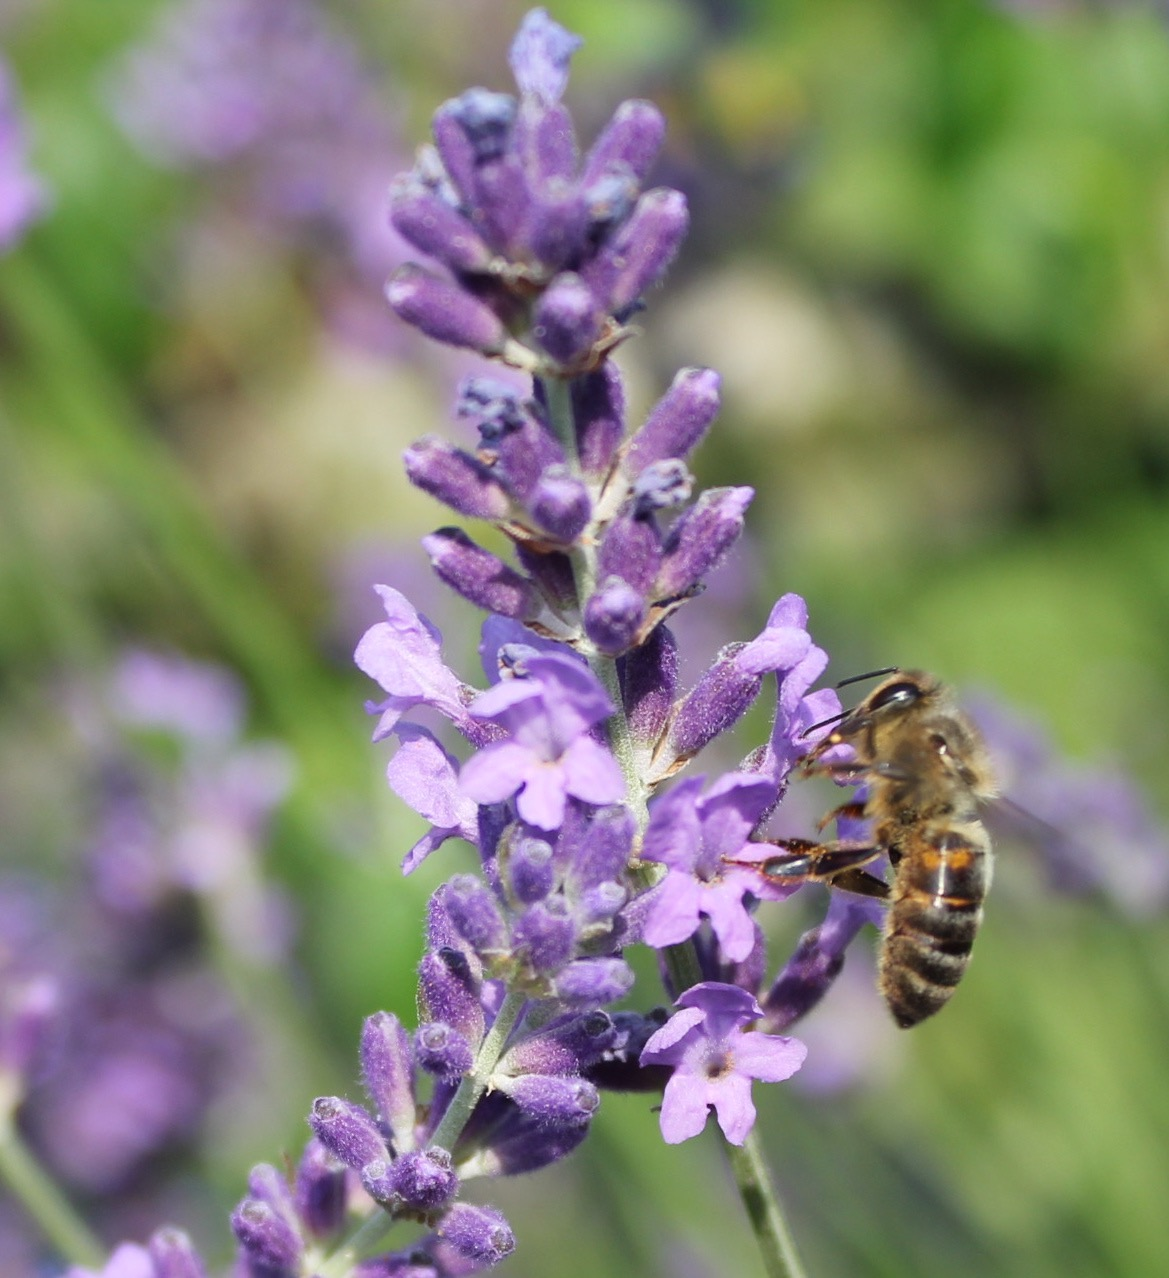 A honey bee collecting nectar from lavender